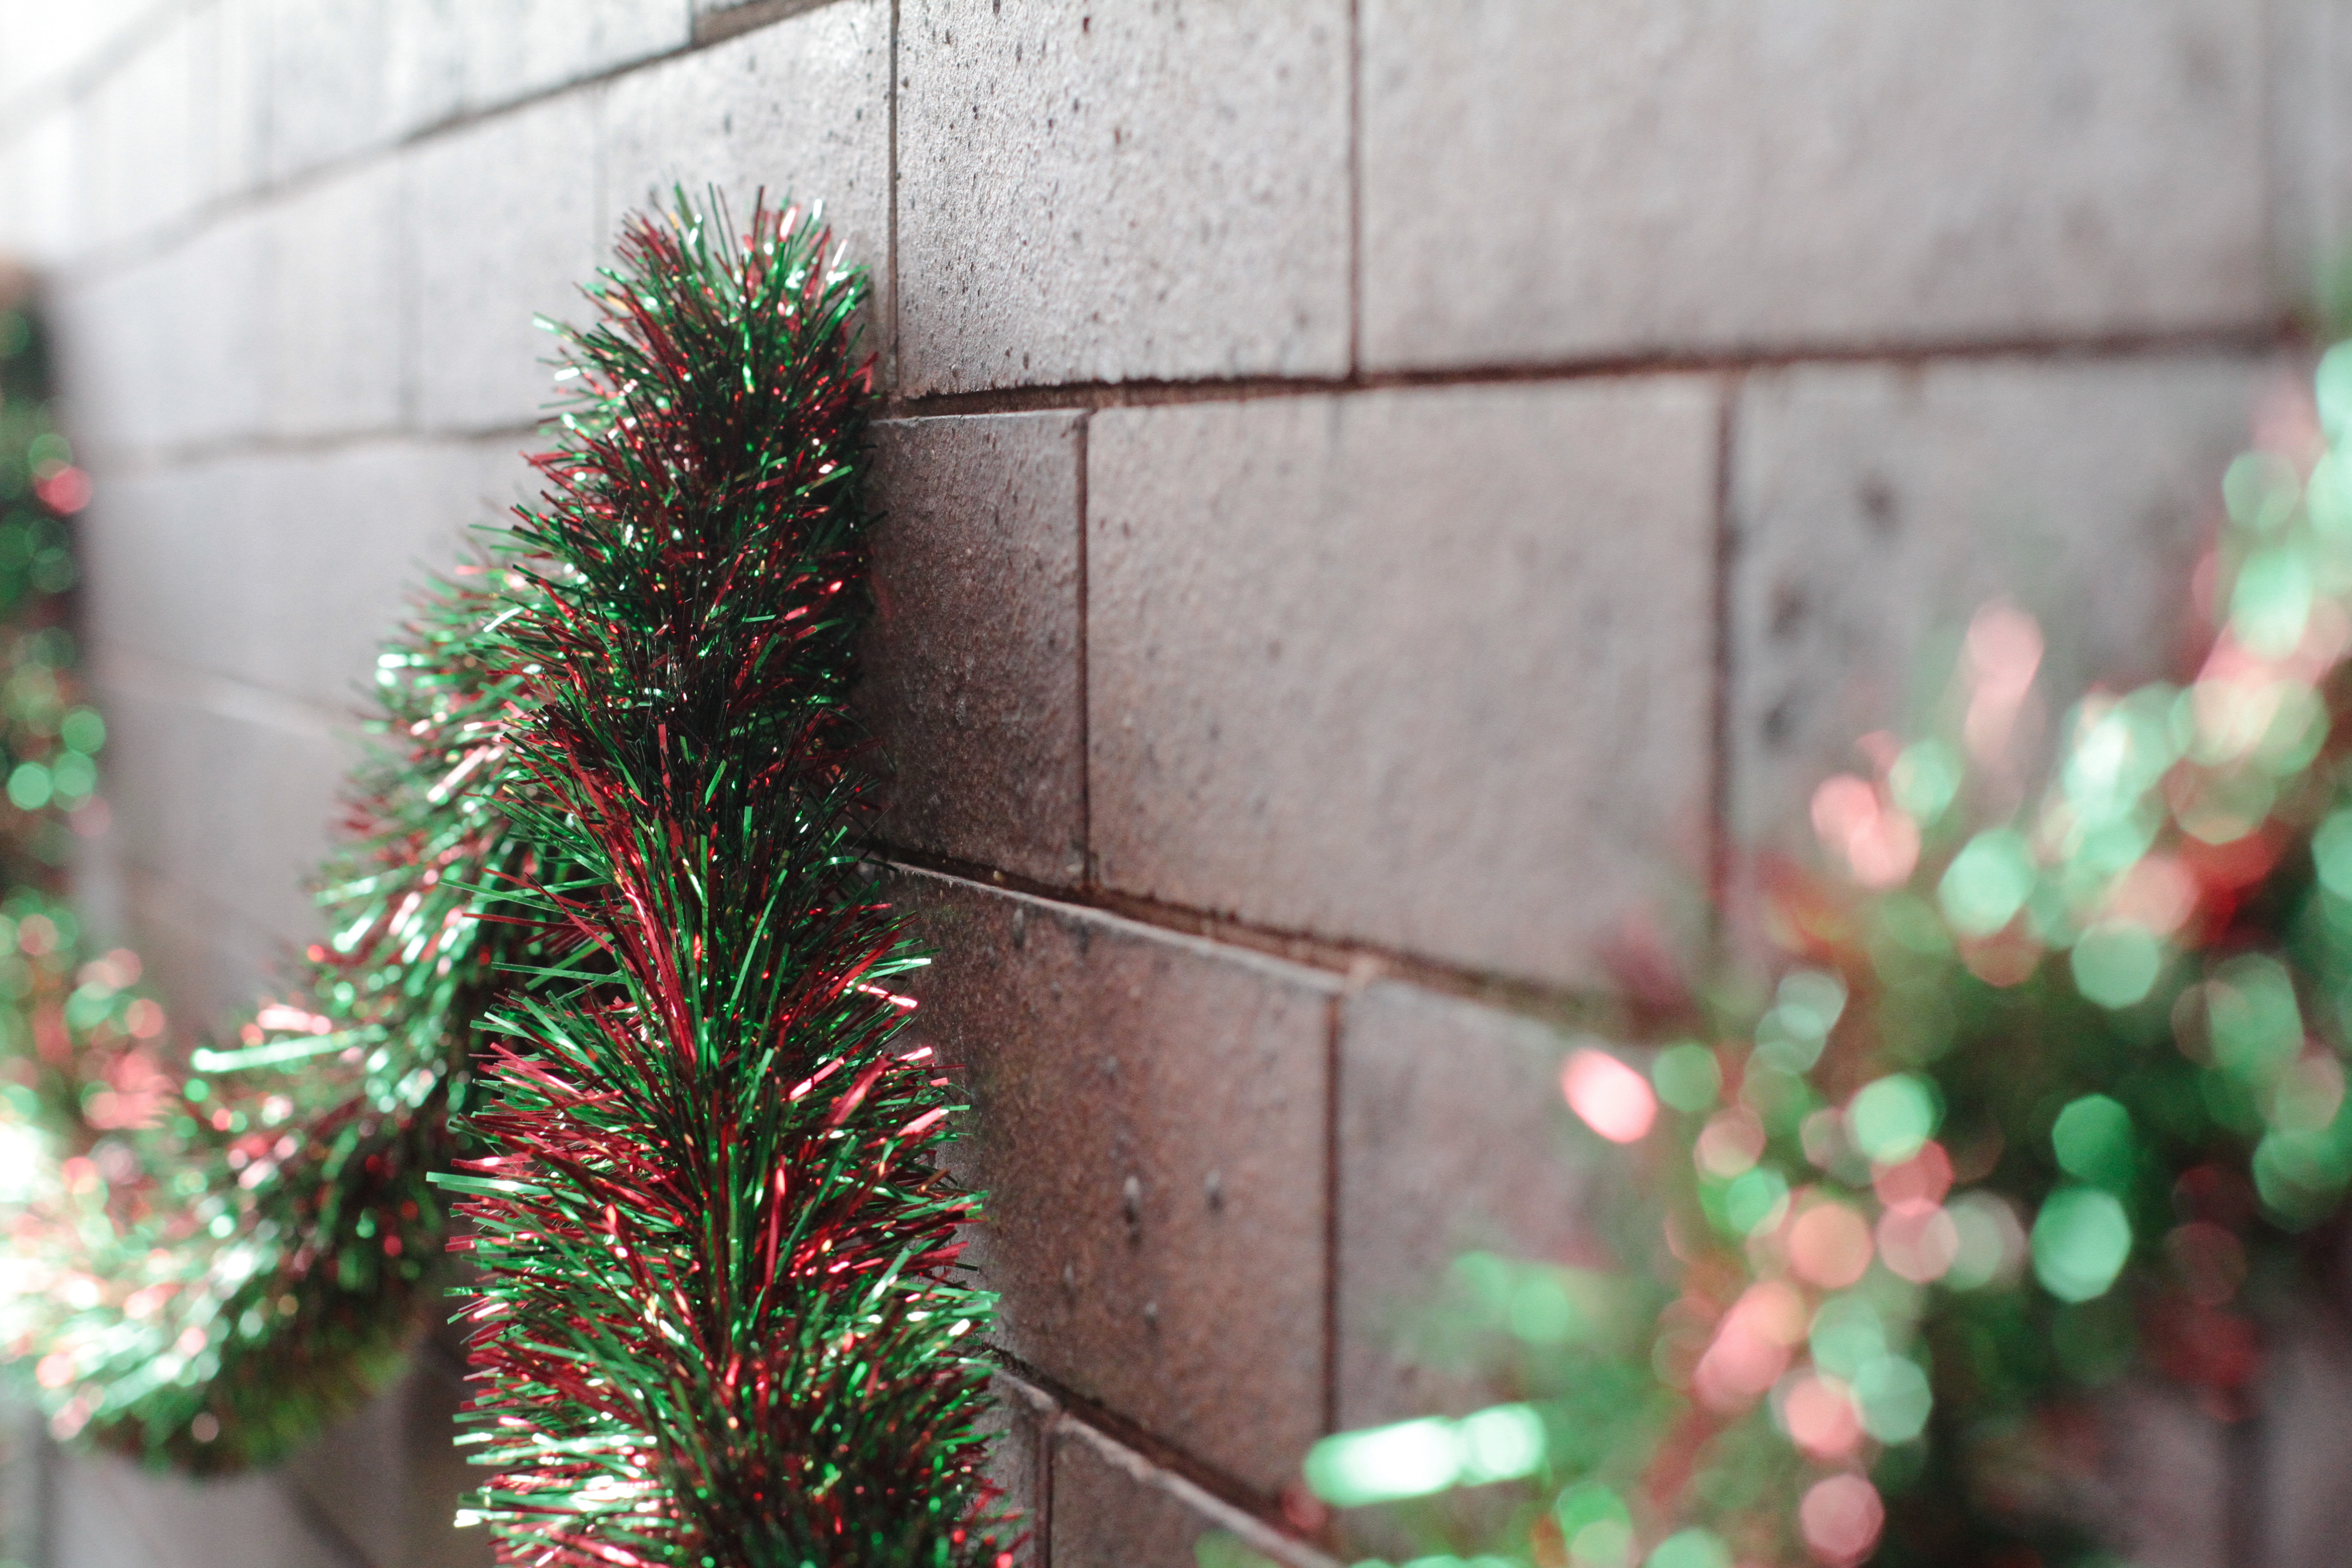 What Can I Use To Attach Christmas Lights To Brick how to hang christmas garland on brick   ehow